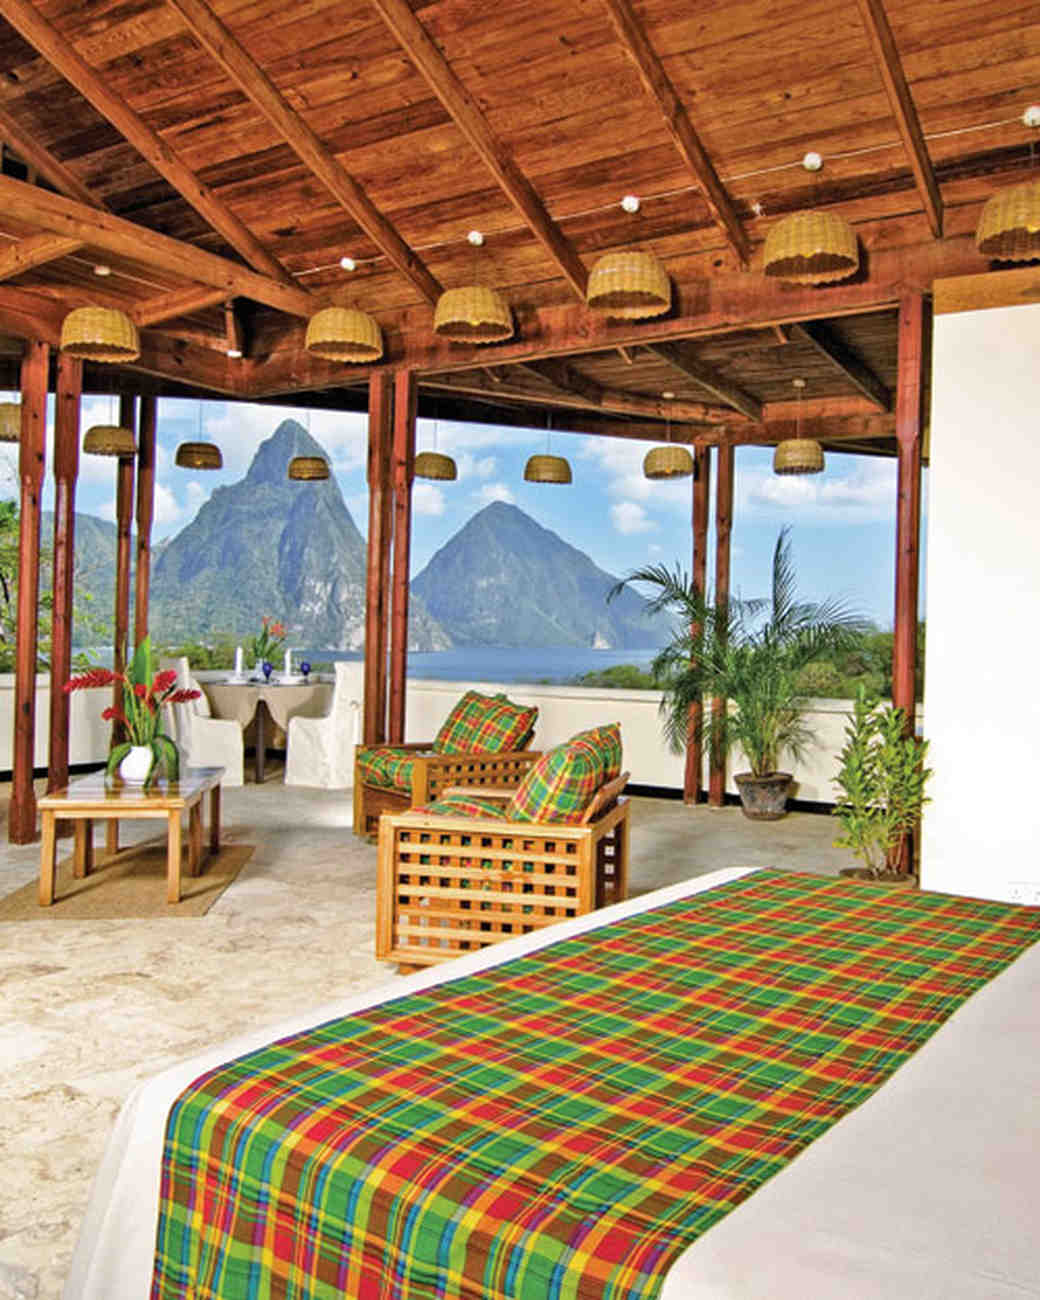 Travel to St Lucias Jade Mountain for Your Wedding in Paradise